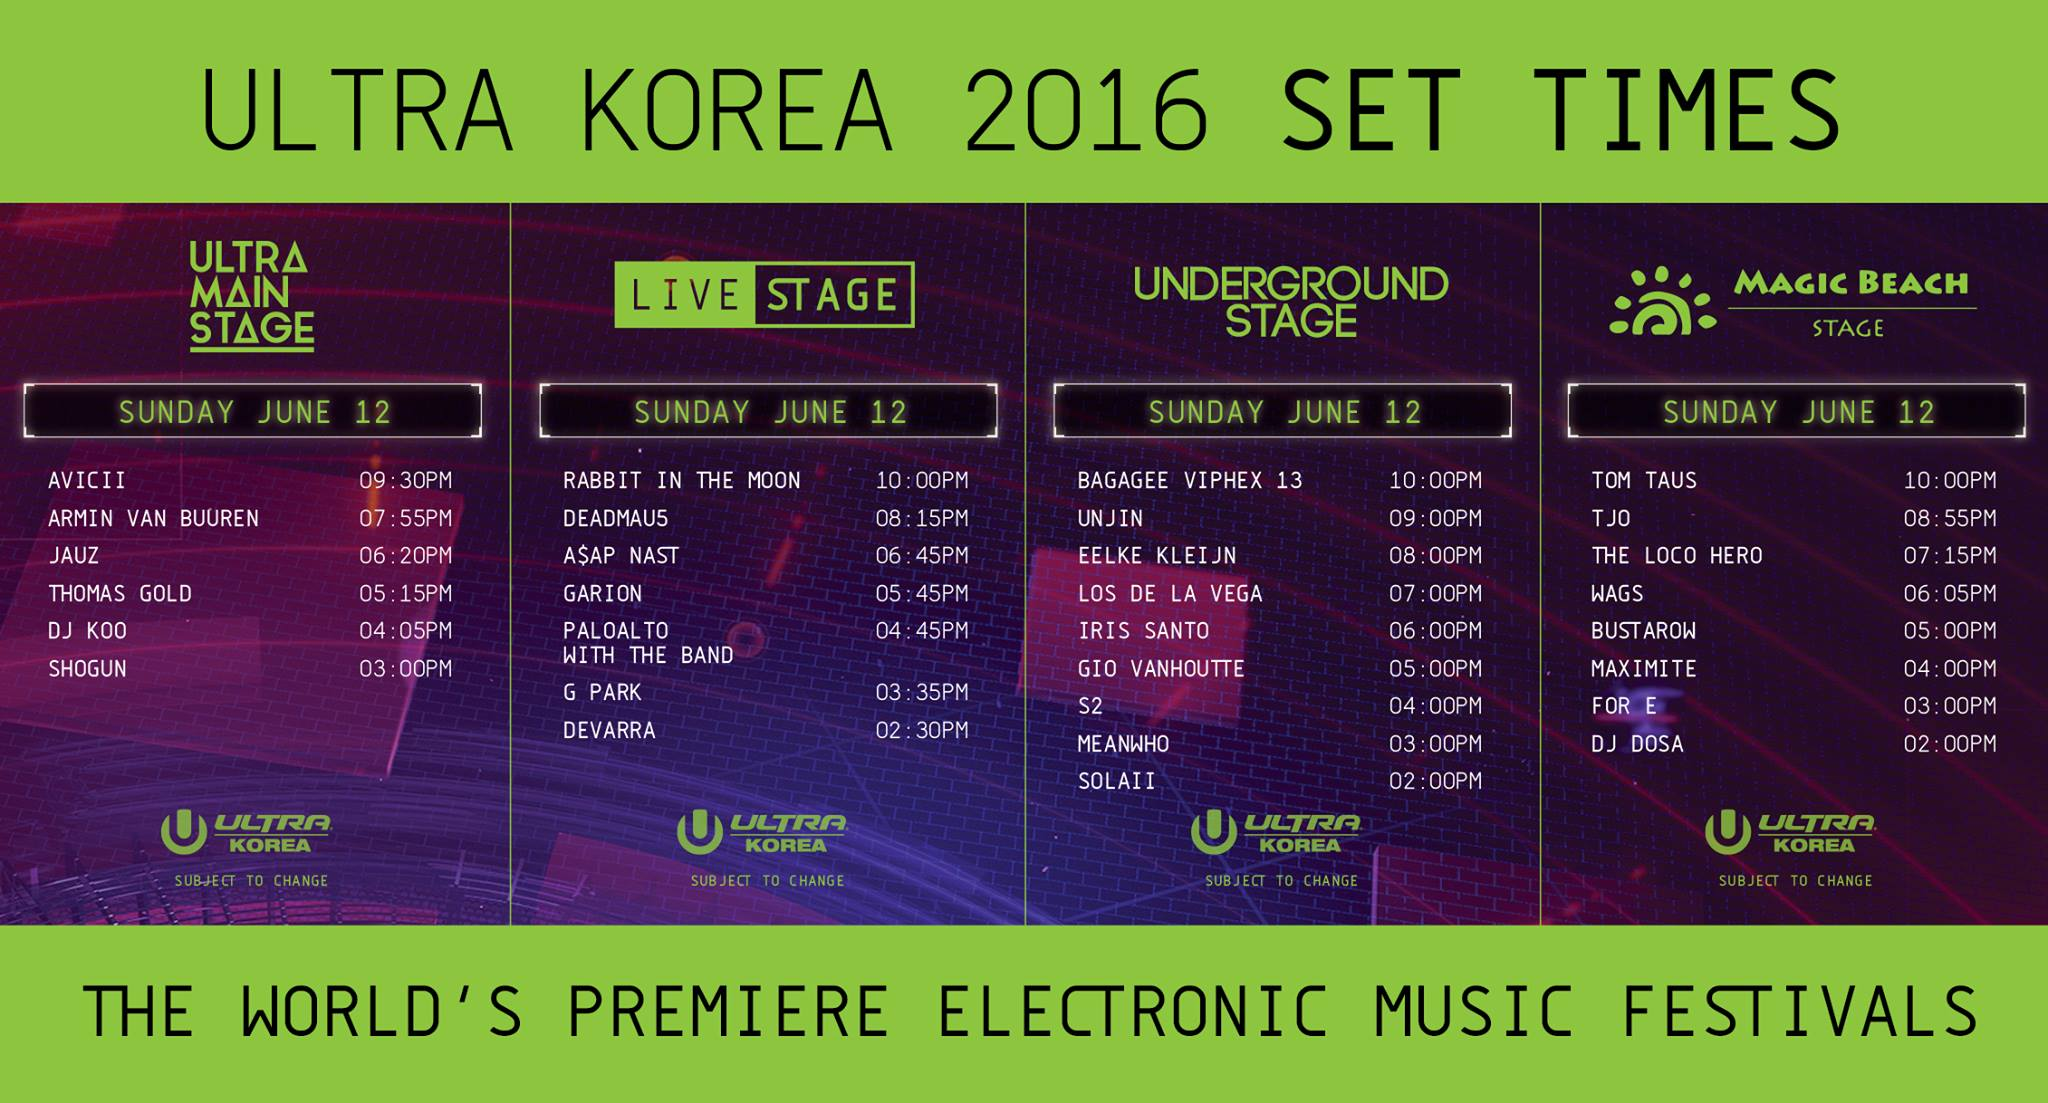 ULTRA KOREA 2016 Sunday